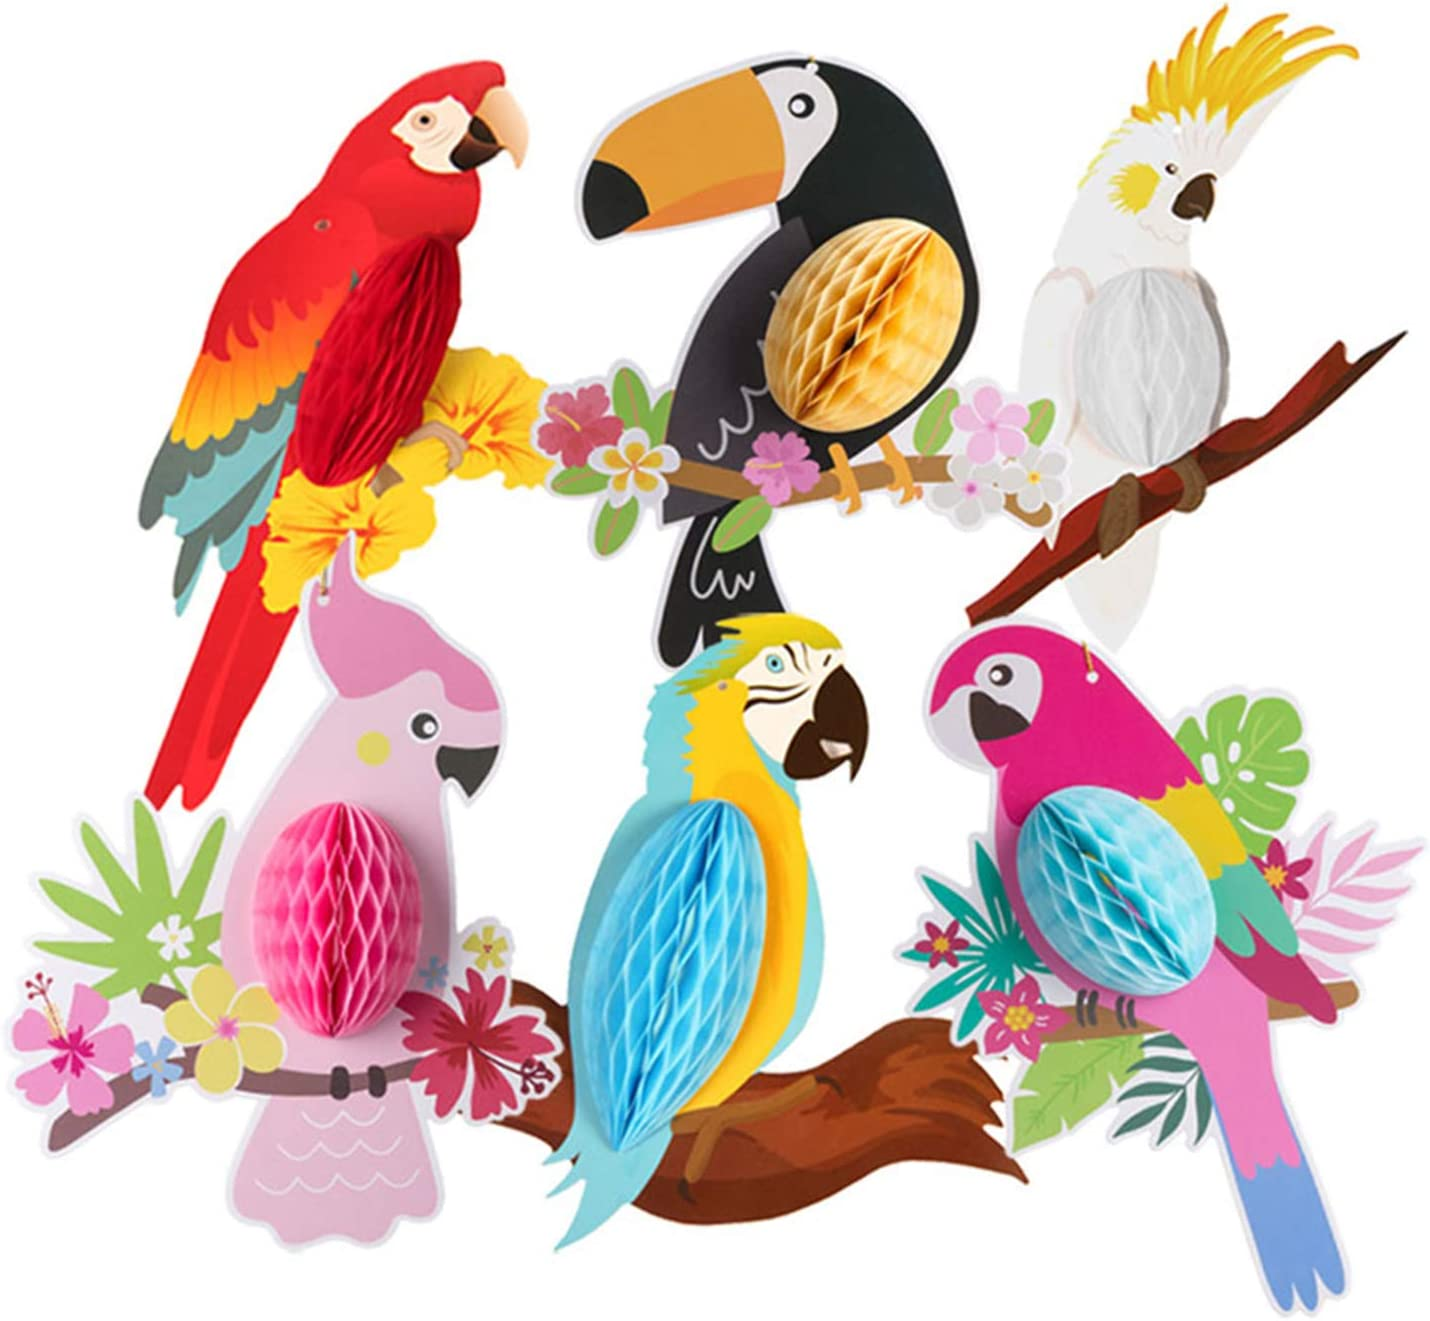 6PCS Tropical Birds Hanging Parrot Paper Honeycomb Decorations Hawaiian Colorful Birds Summer Tiki Bar Luau Party Supplies for Birthday Decorations Home Classroom Hanging Décor